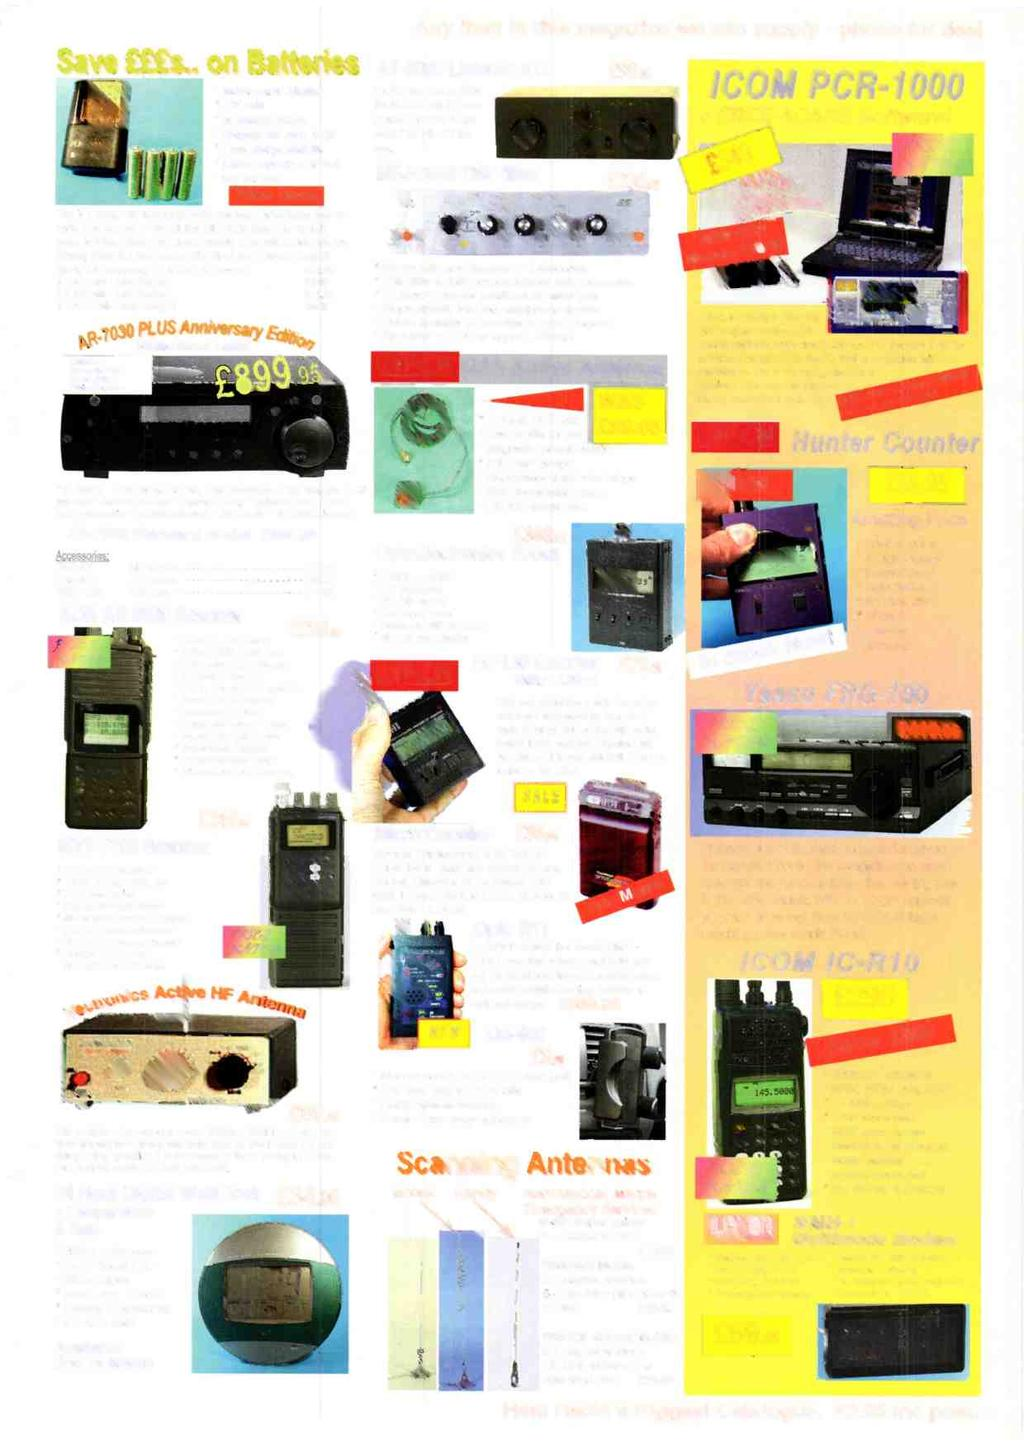 Propagation Special World Exclusive See The First Pictures In 5wm Schematic Diagram Come From Circuit Nicad Battery Zapper Power 864 X Its Any Item This Magazine We Can Supply Phone For Deal 91 Rechargeable